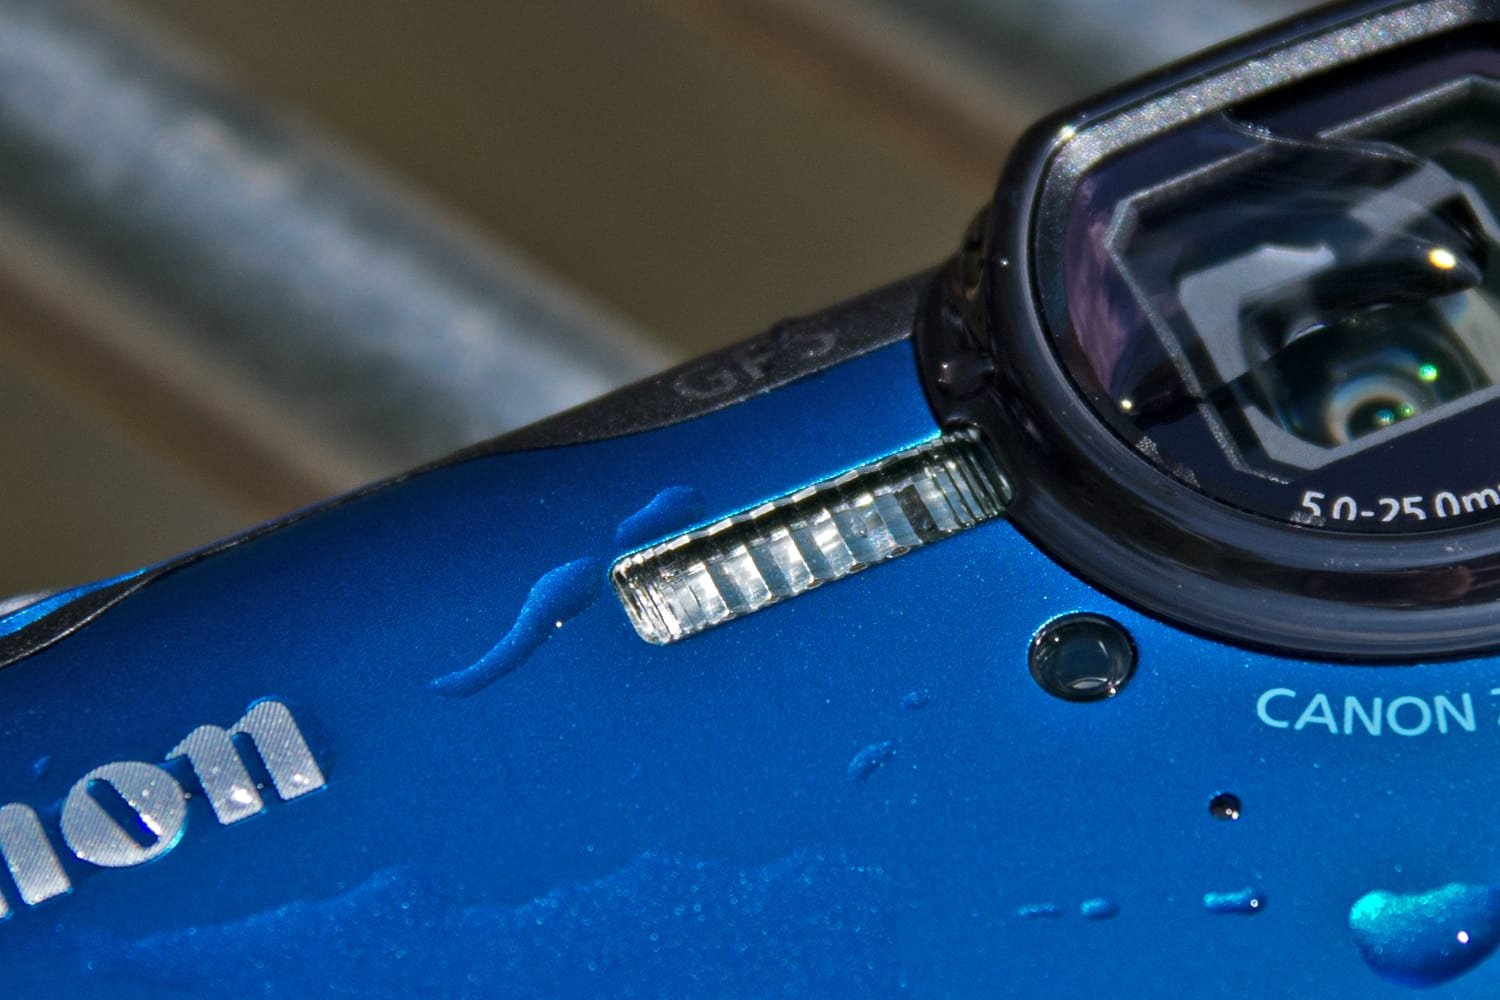 A picture of the Canon PowerShot D30's flash.